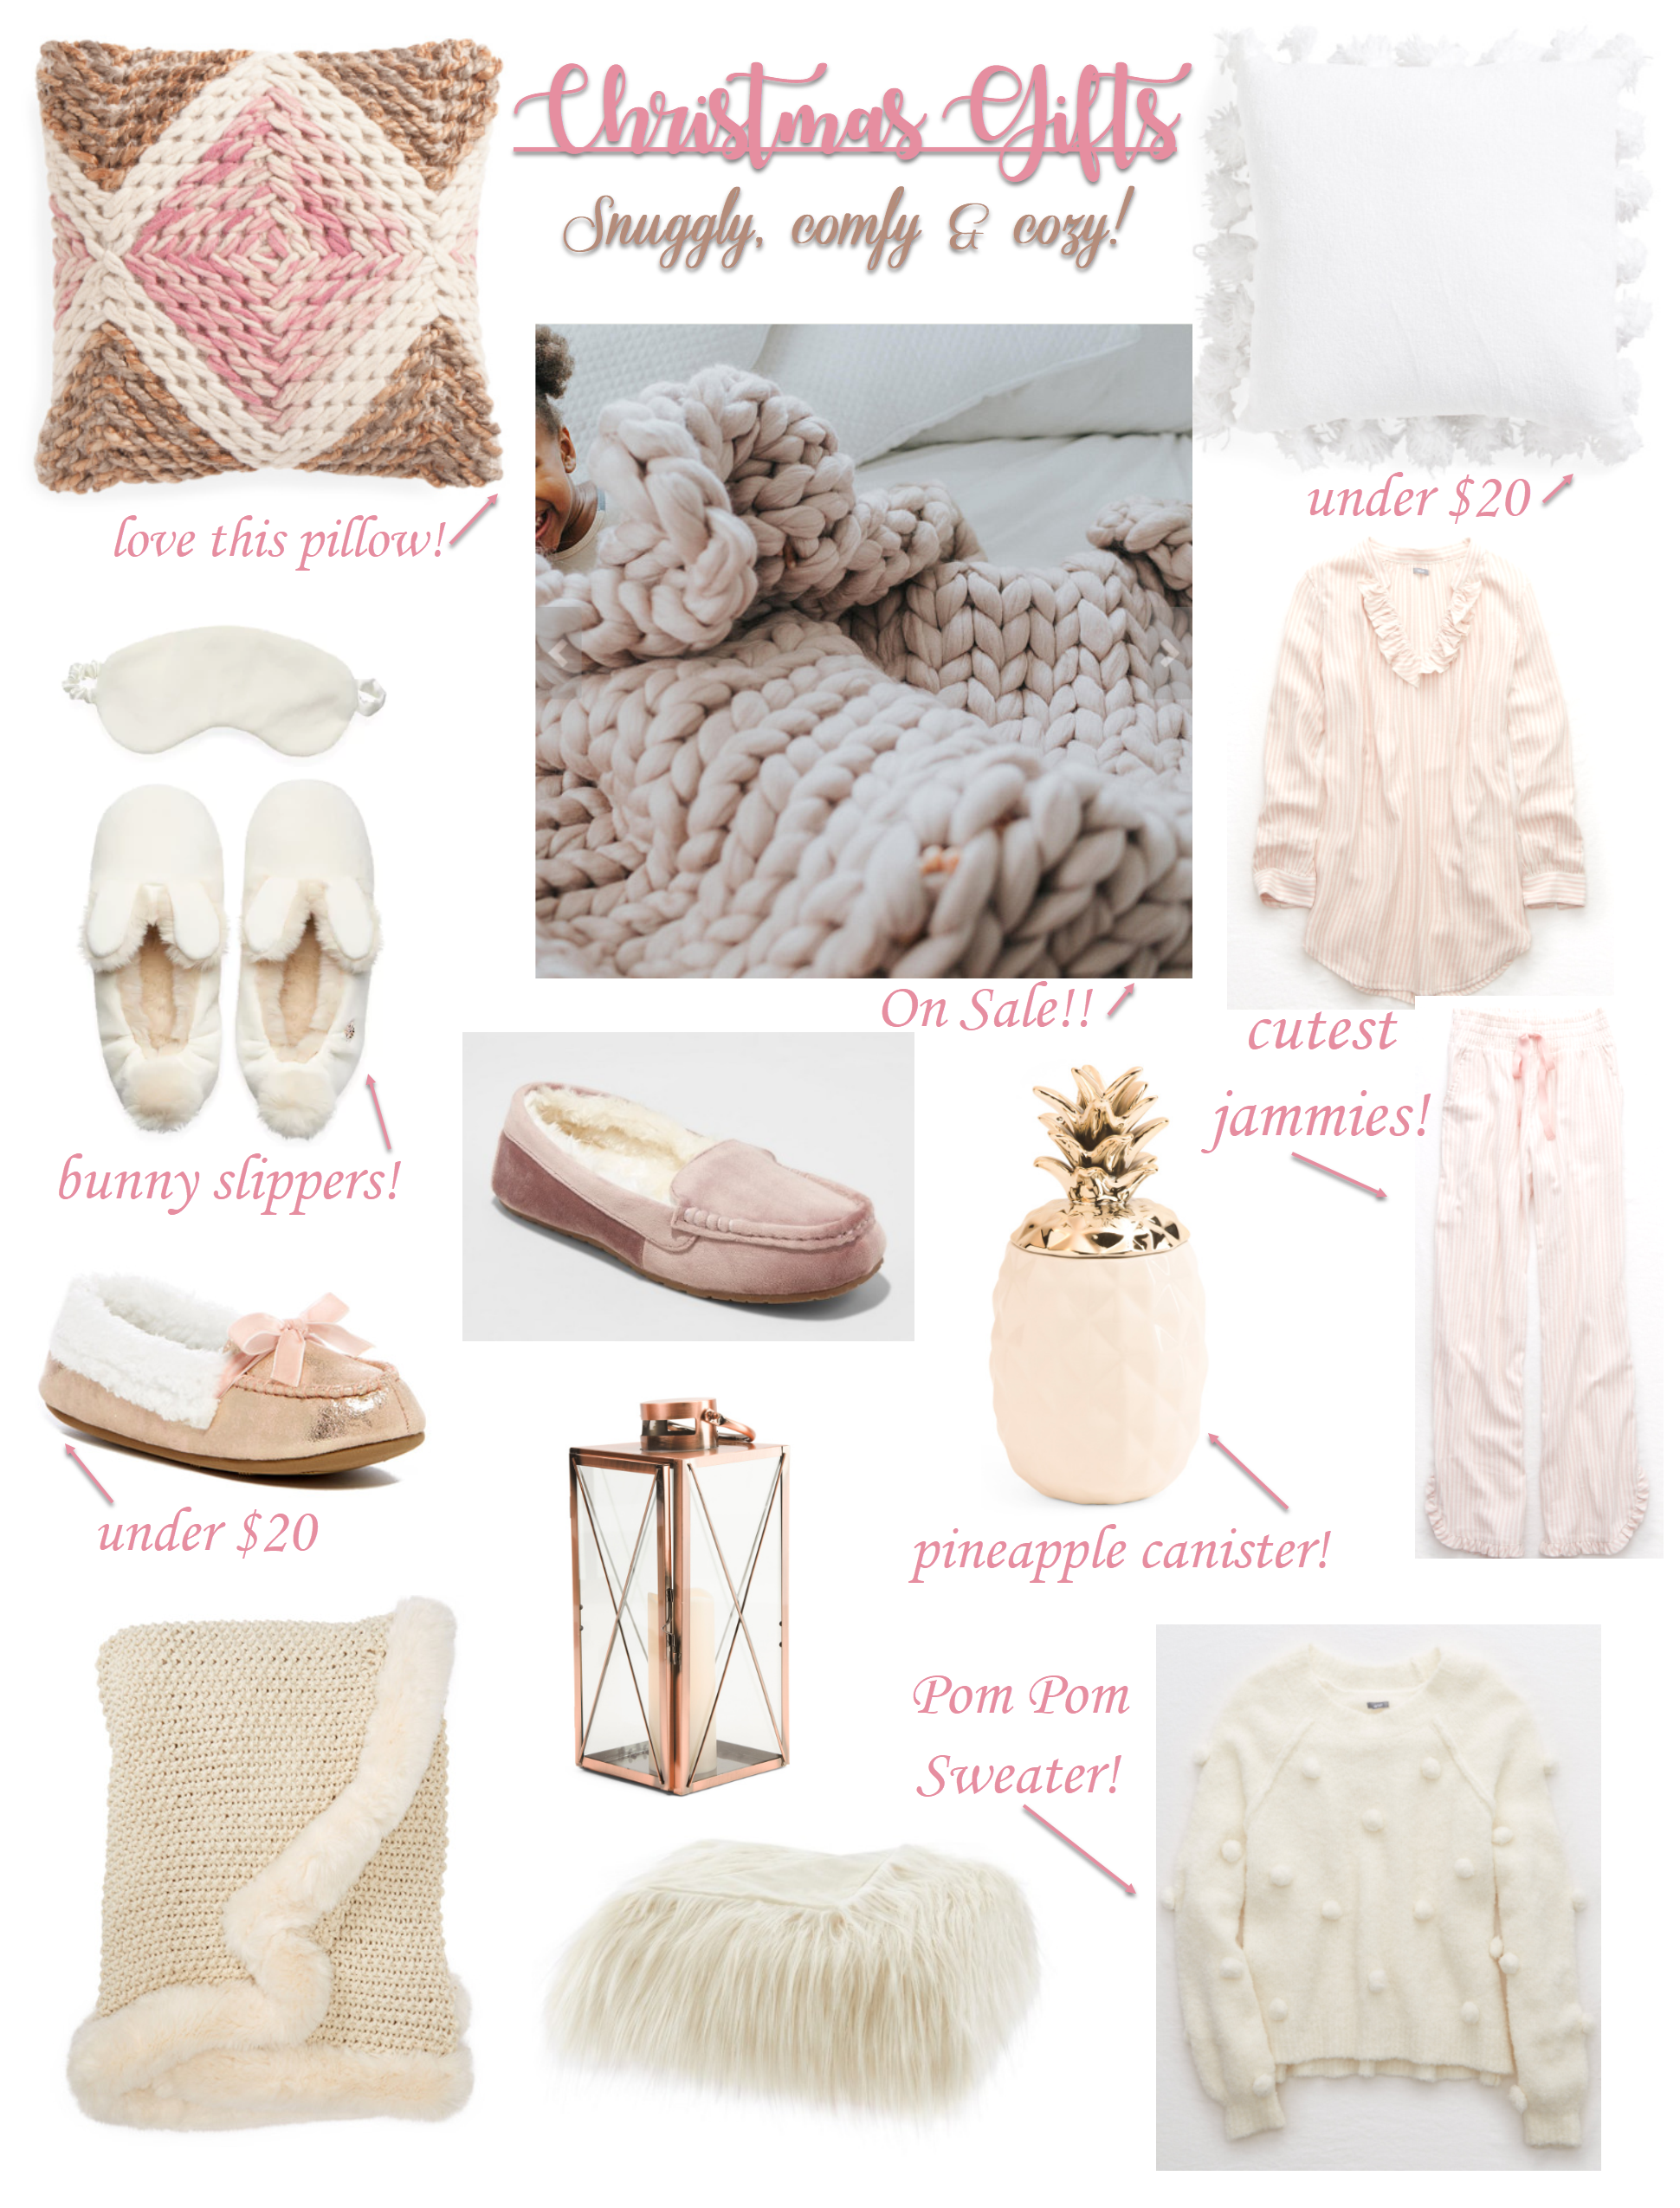 Snuggly, Comfy & Cozy Christmas Gifts